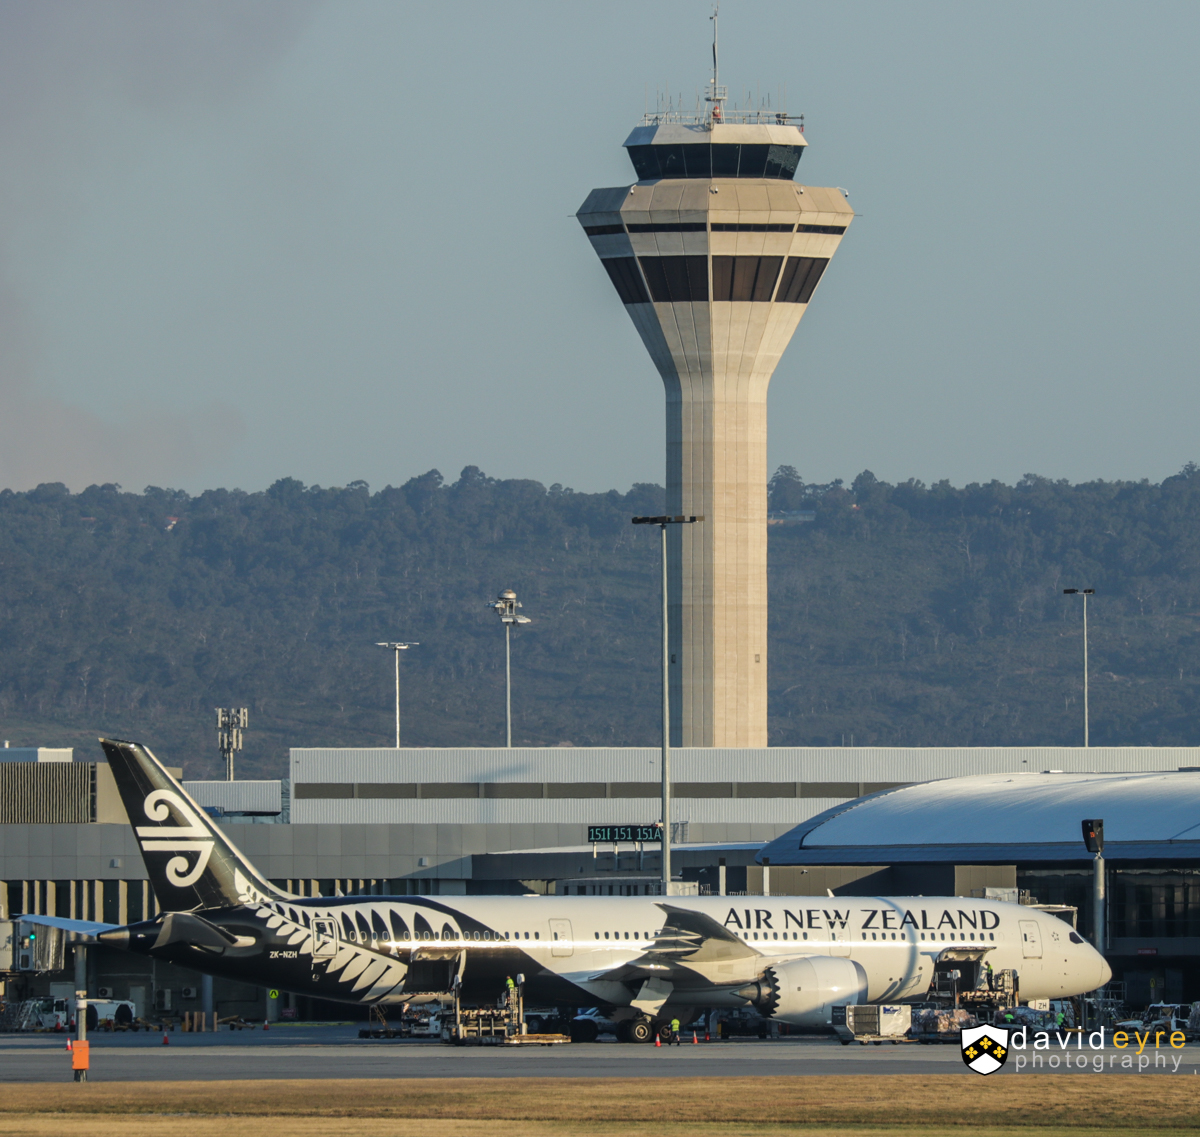 ZK-NZH Boeing 787-9 Dreamliner (MSN 37964/351) of Air New Zealand with the control tower behind, at Perth Airport - 1 November 2017. Flight NZ176 to Auckland, parked at Bay 150 at 5:56pm - it departed at 6:54pm. Photo © David Eyre